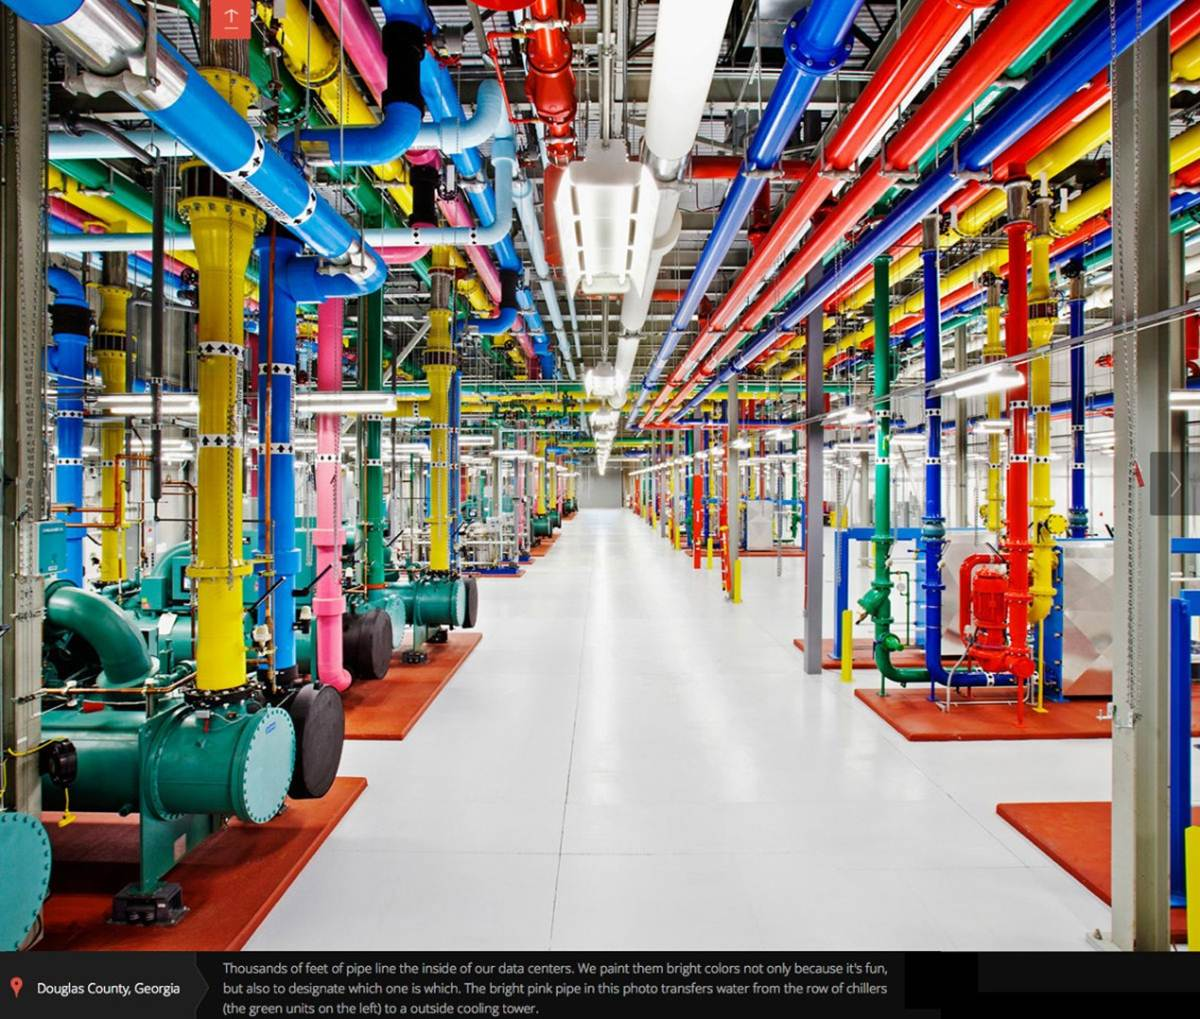 """inside the mind of google """"inside the mind of google"""" the world's most powerful technology company was co-founded by two stanford university graduates in 1998 both larry page and sergey brin, the google guys, met while studying at stanford university as phd candidates."""